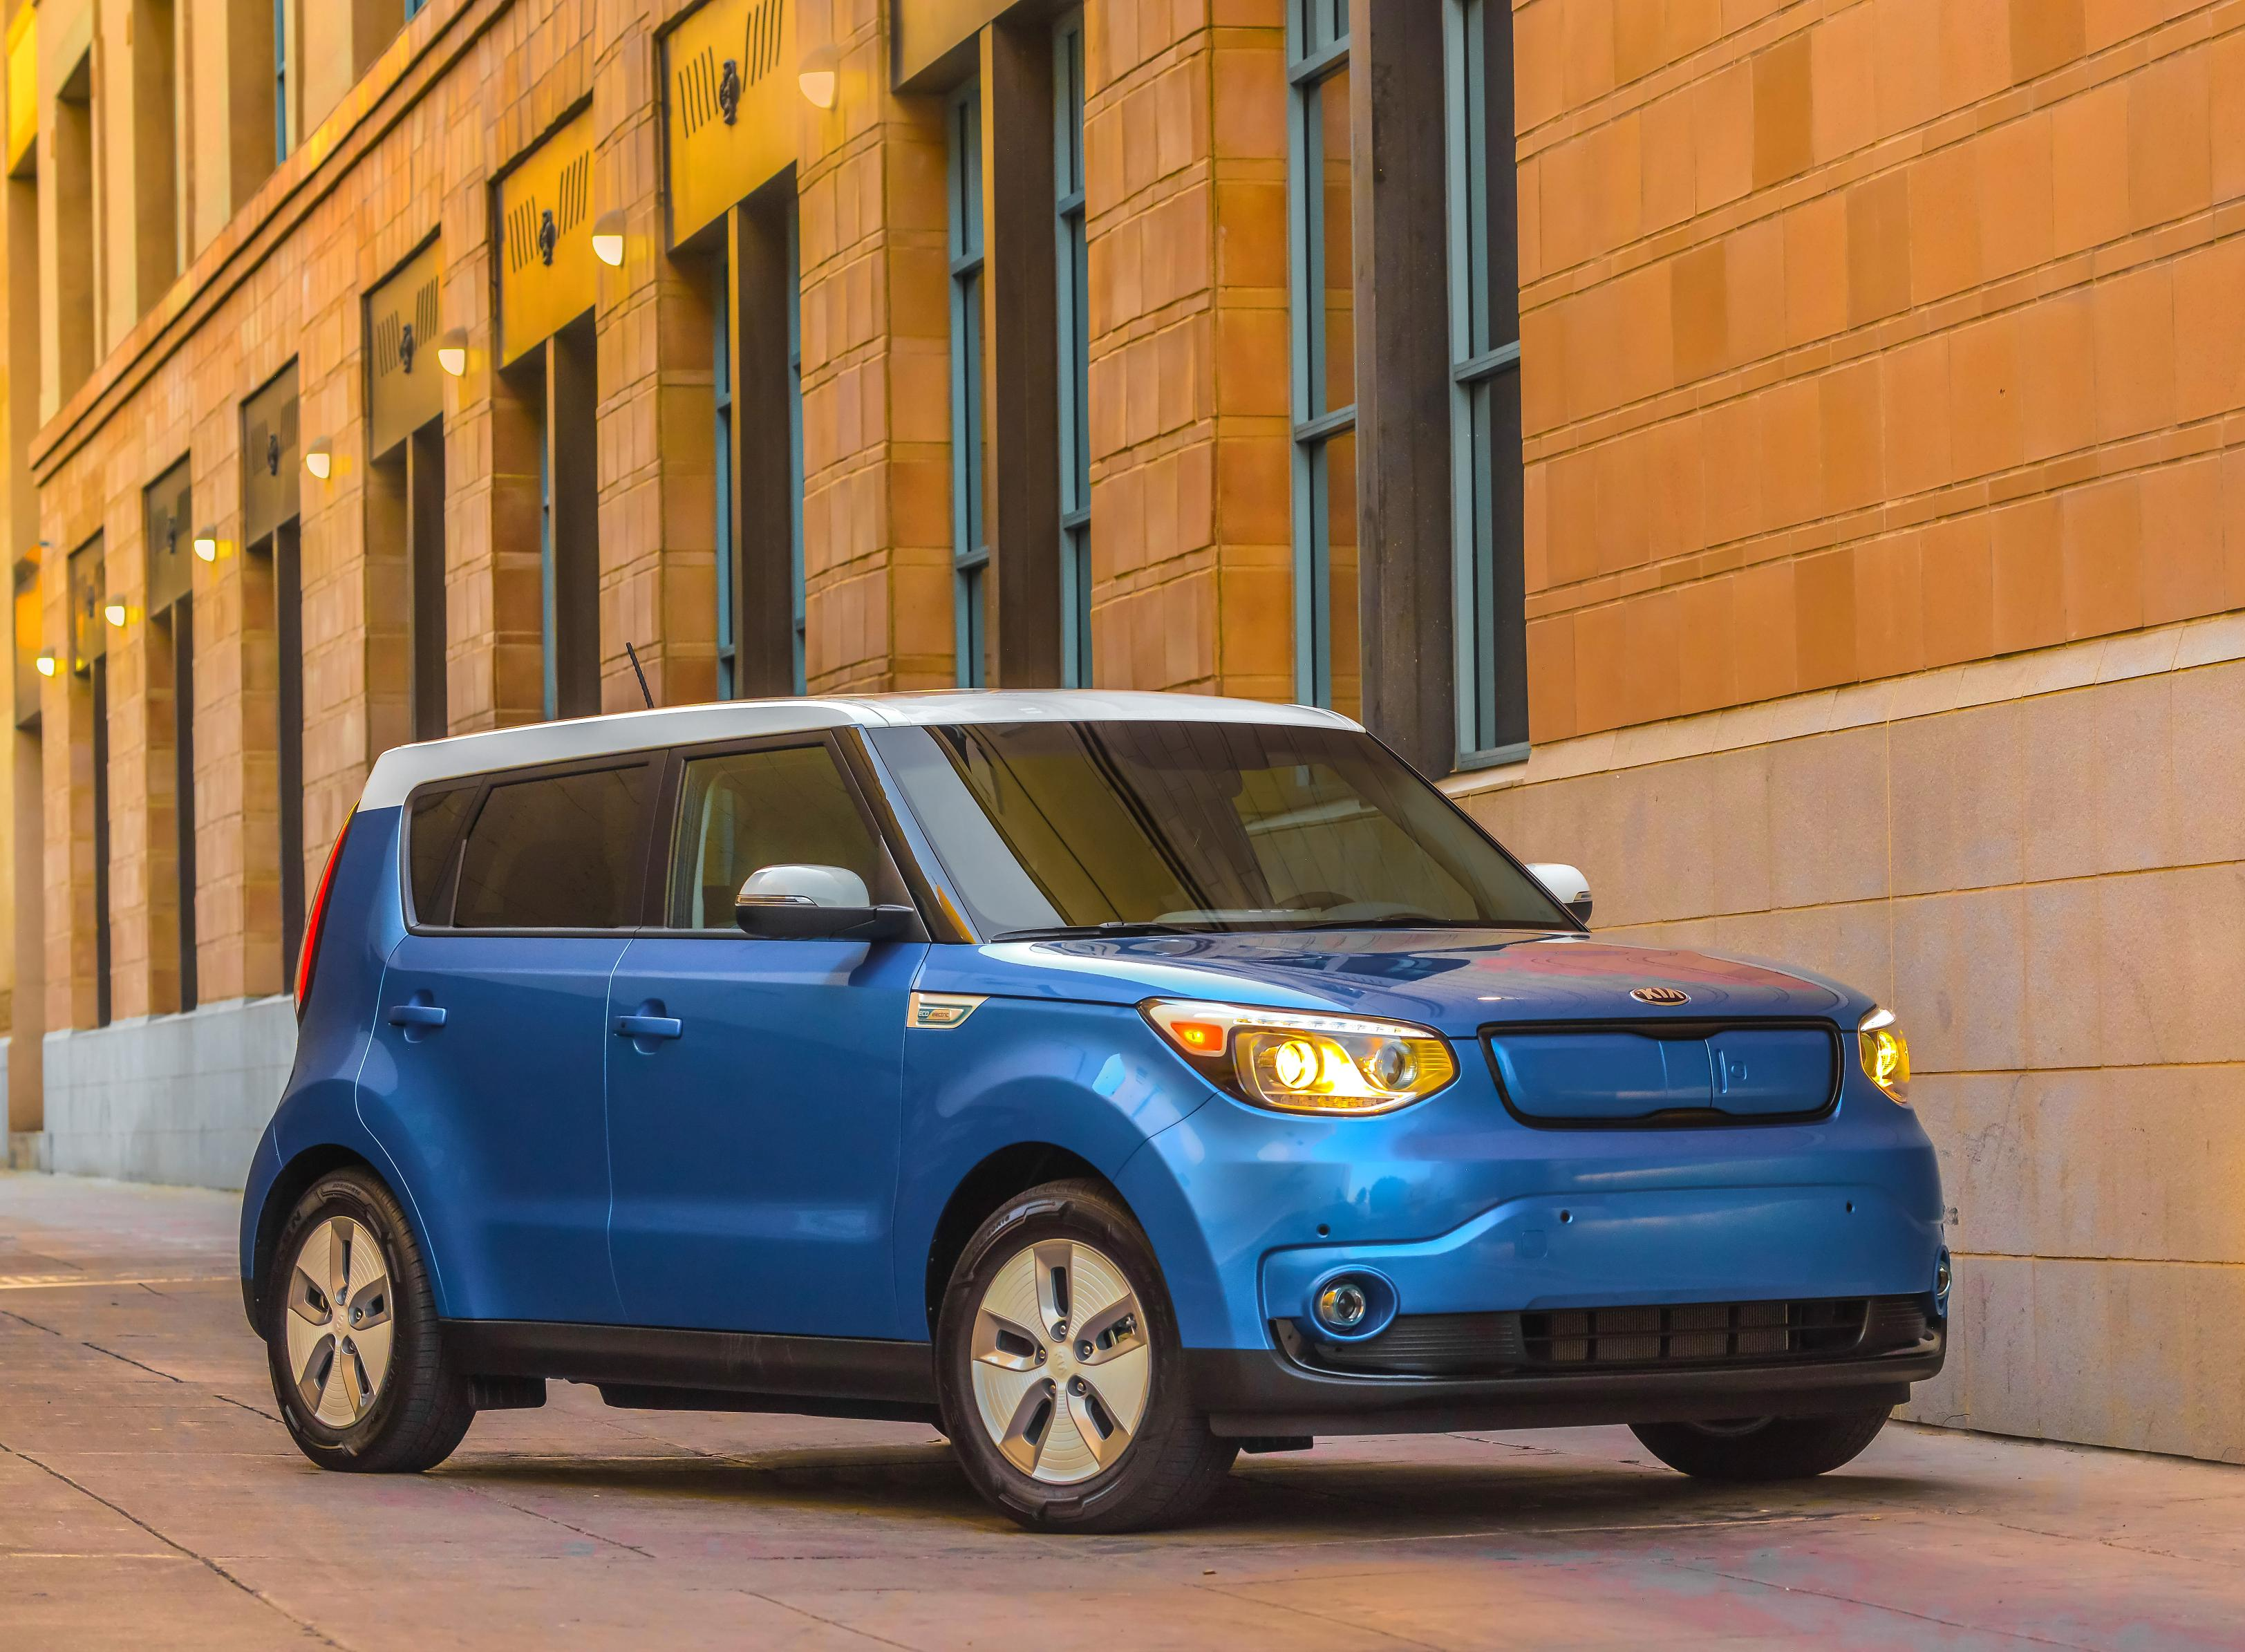 2016 Kia Soul EV details released as Kia builds infrastructure in